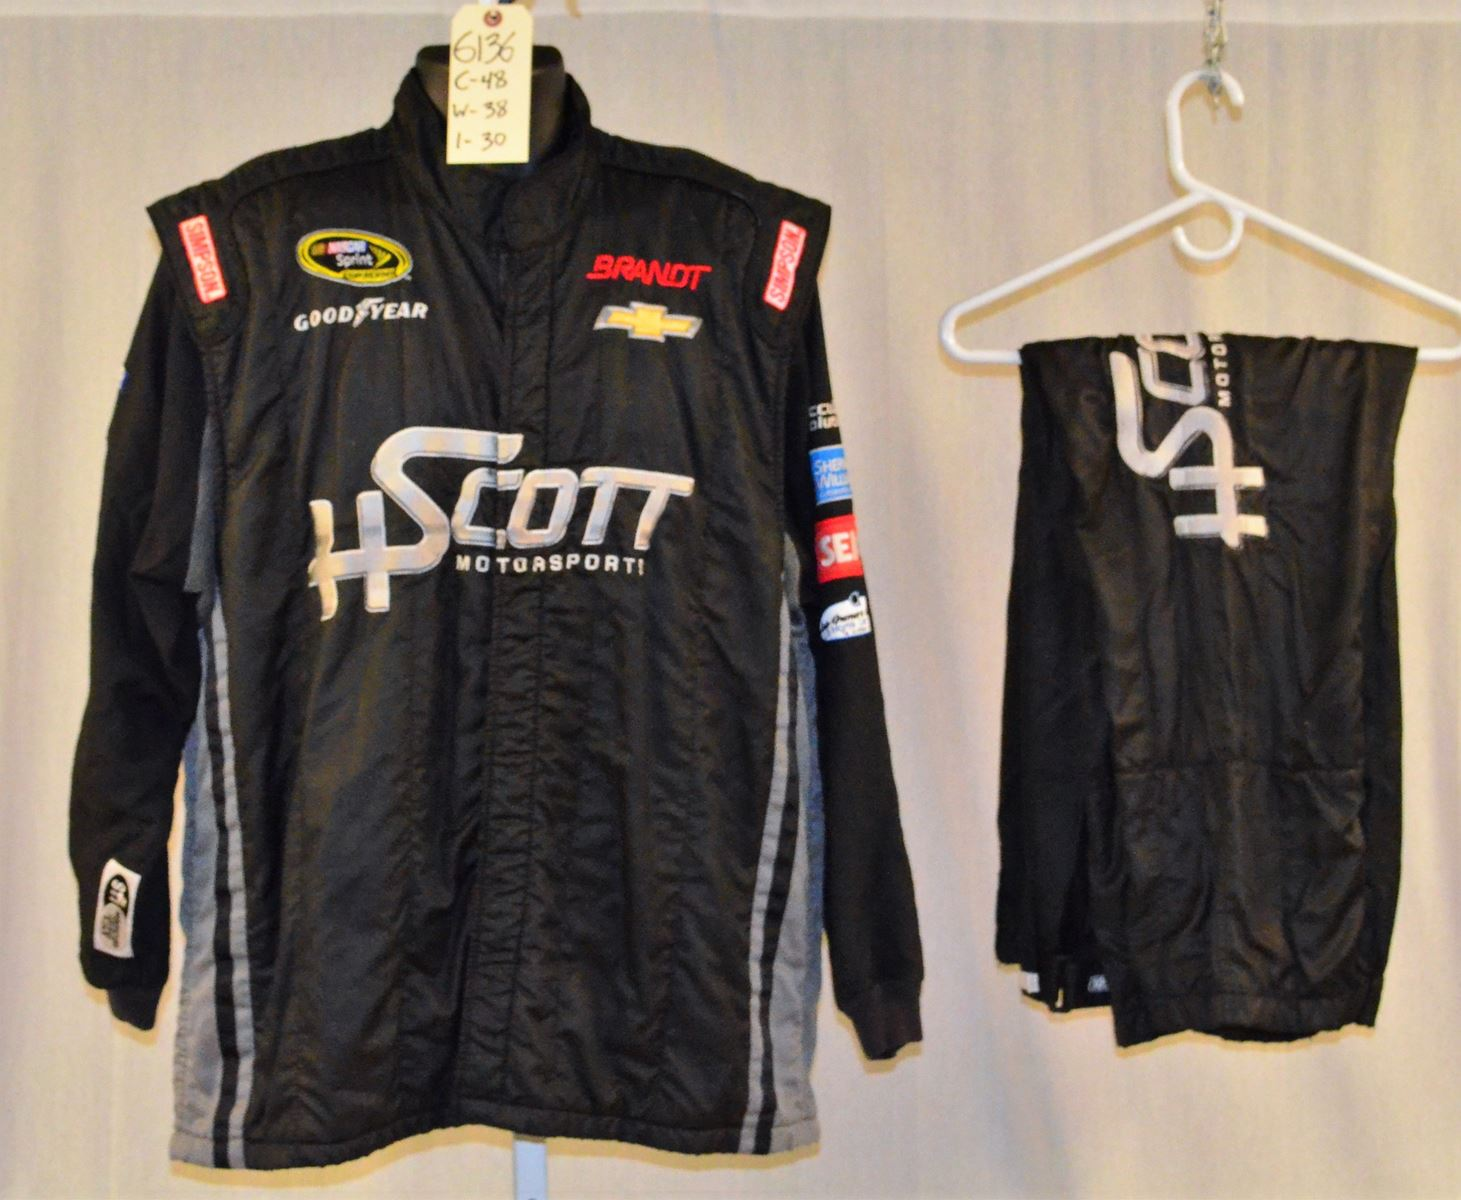 Racing Fire Suits >> Hscott Race Used 3 Piece Simpson Sfi 5 Nascar Racing Fire Suit 6136 C48 W38 I30